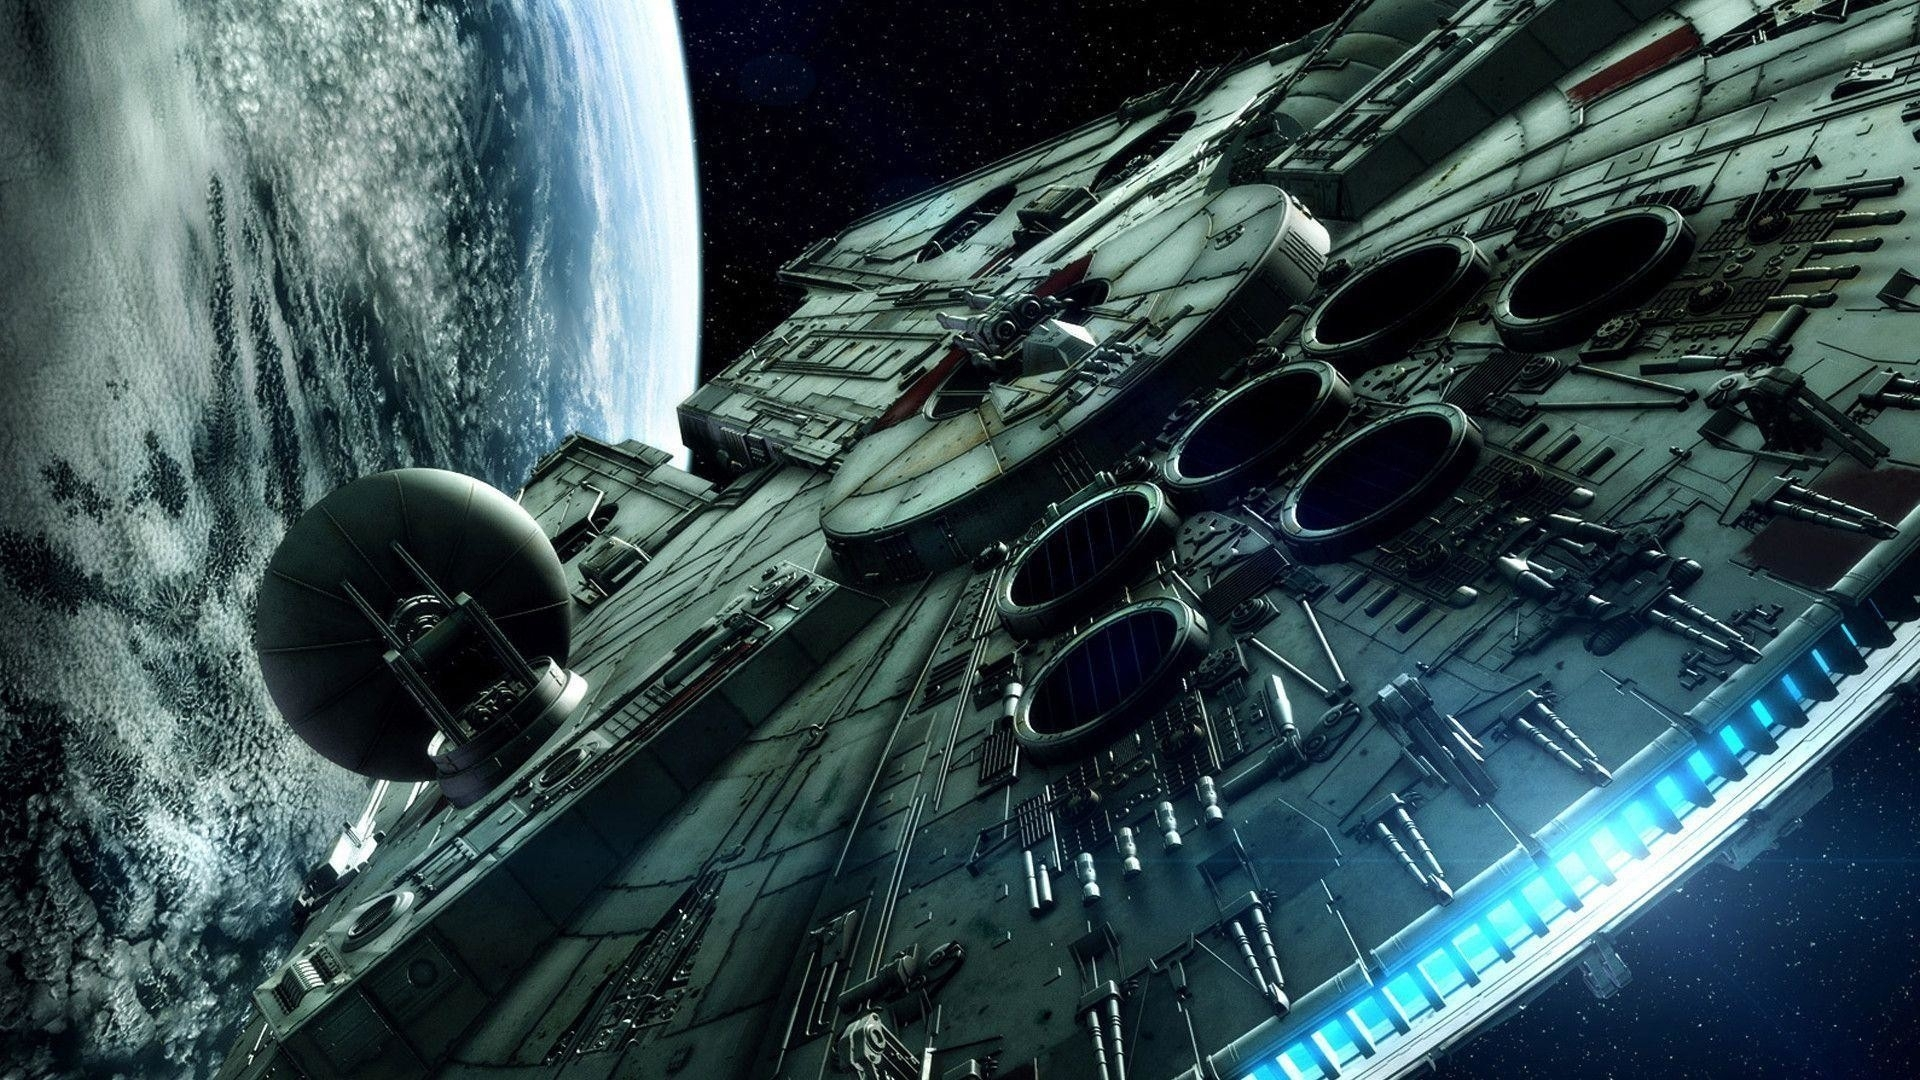 star wars hd wallpapers 1920x1080 (62+ images)